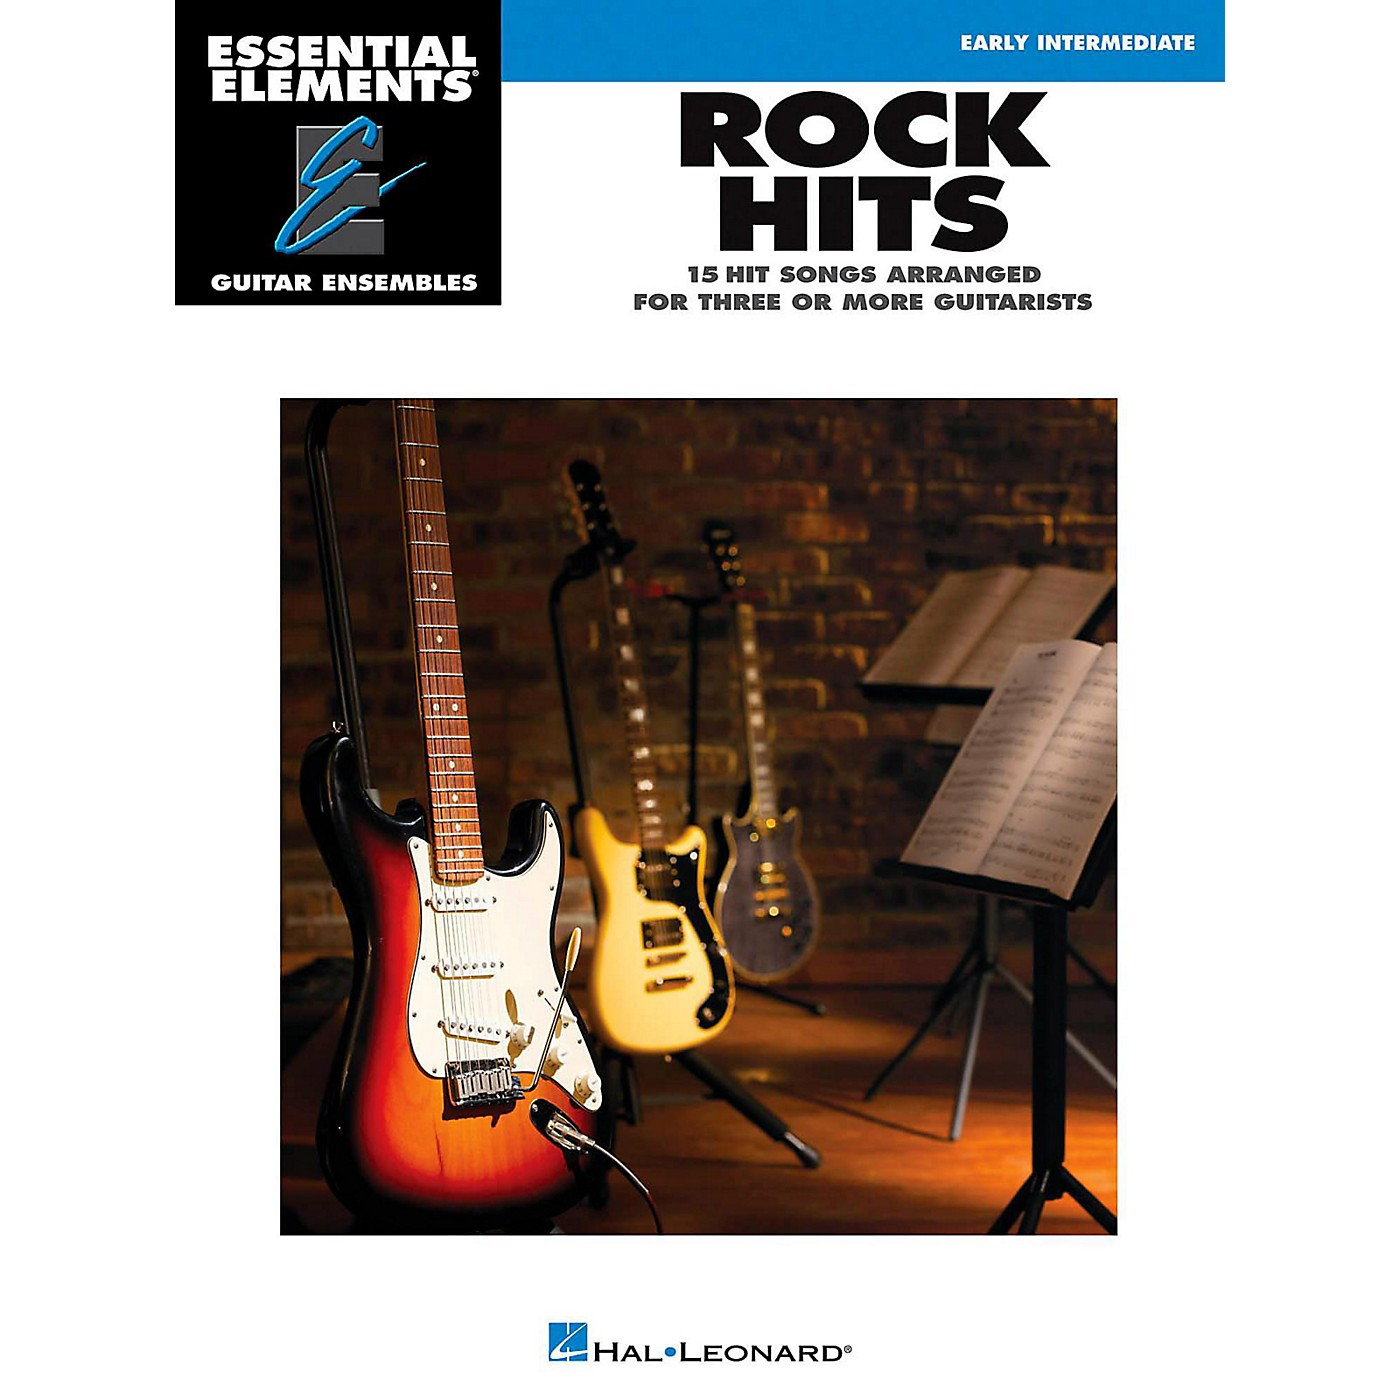 Hal Leonard Rock Hits - Essential Elements Guitar Ensembles Early Intermediate thumbnail